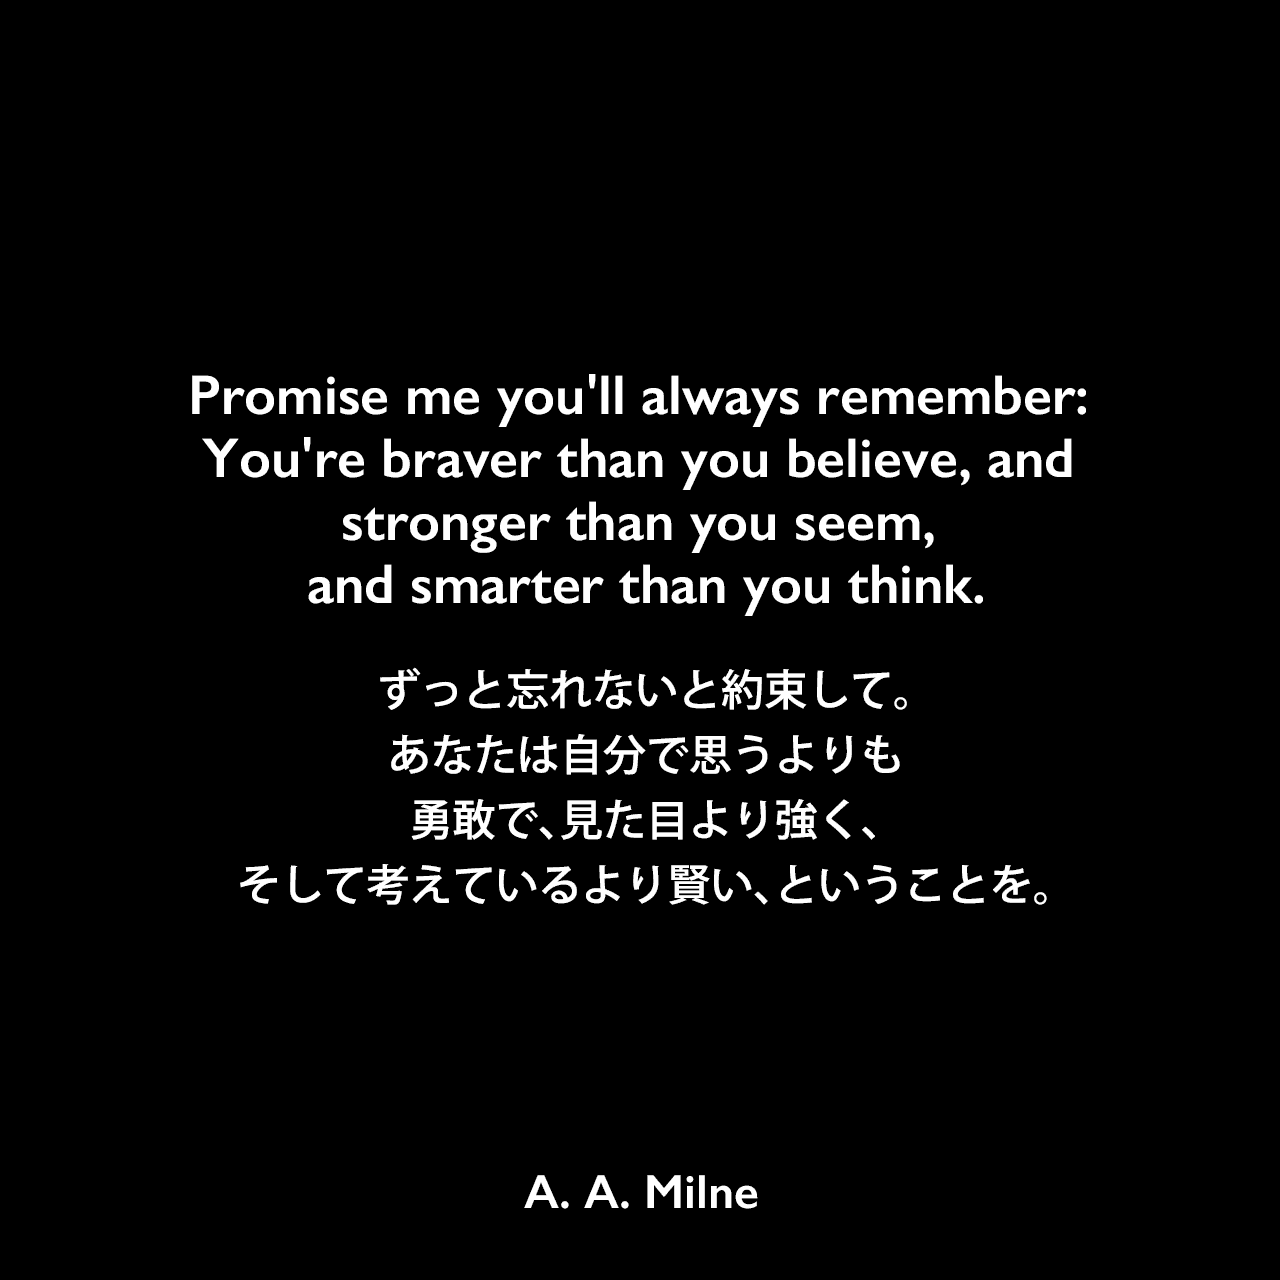 Promise me you'll always remember: You're braver than you believe, and stronger than you seem, and smarter than you think.ずっと忘れないと約束して。あなたは自分で思うよりも勇敢で、見た目より強く、そして考えているより賢い、ということを。A. A. Milne